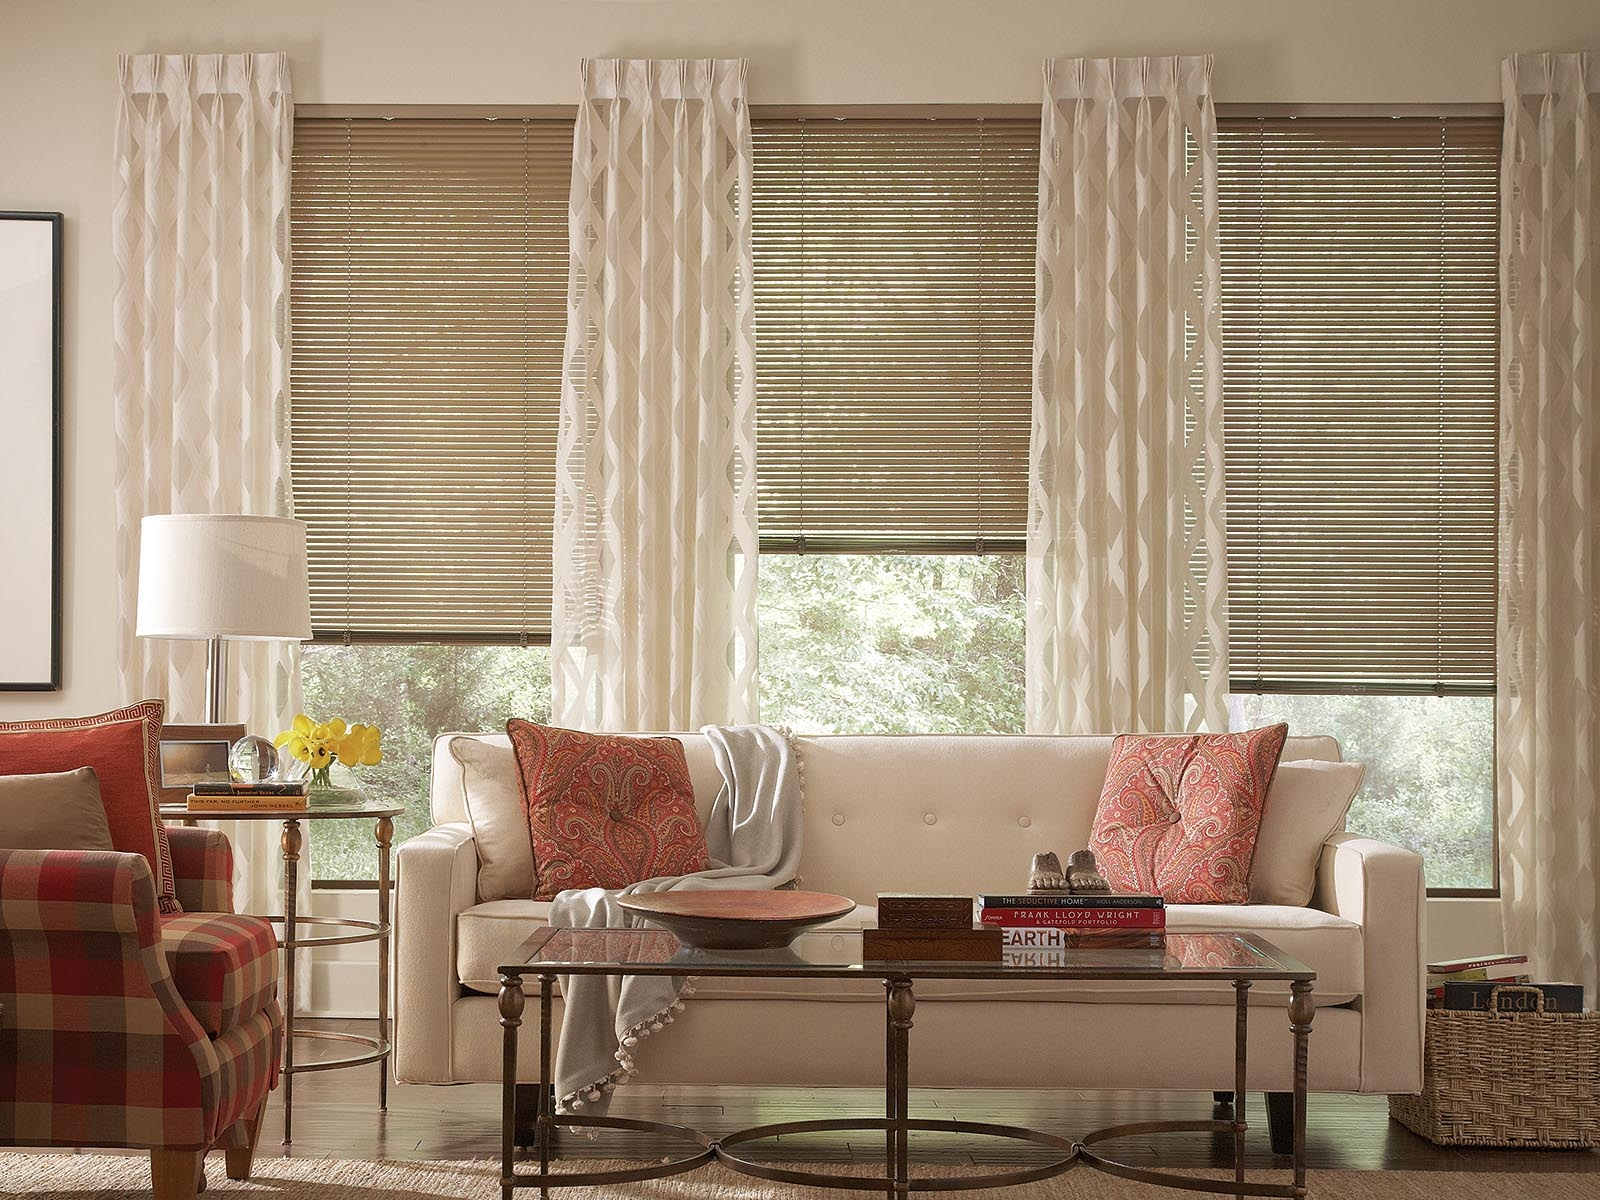 Shades Blinds Drapes And Shutters Lafayette Interior Fashions With Regard To Pattern Blinds (View 14 of 15)